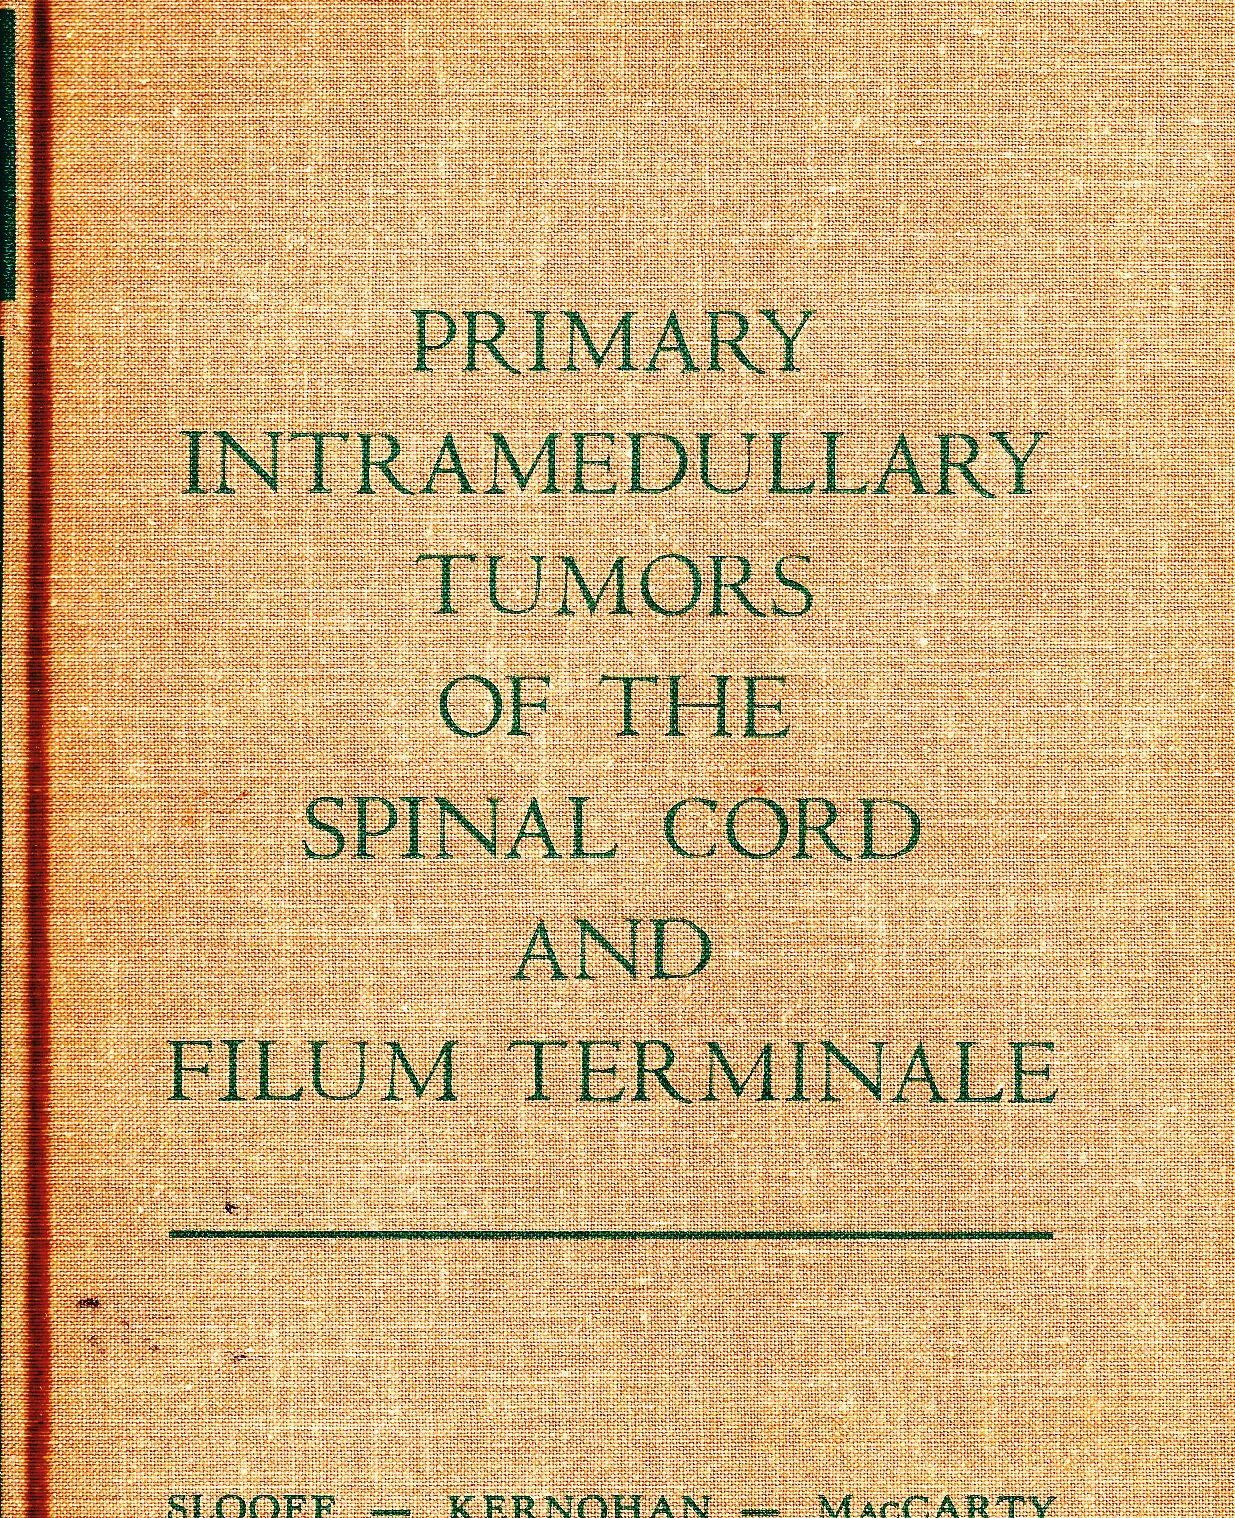 Primary Intramedullary Tumors Of The Spinal Cord And Filum Terminale Slooff Johan L Amazon Com Books The filum terminale region is an extremely unusual location for the occurrence of tanycytic ependymoma. primary intramedullary tumors of the